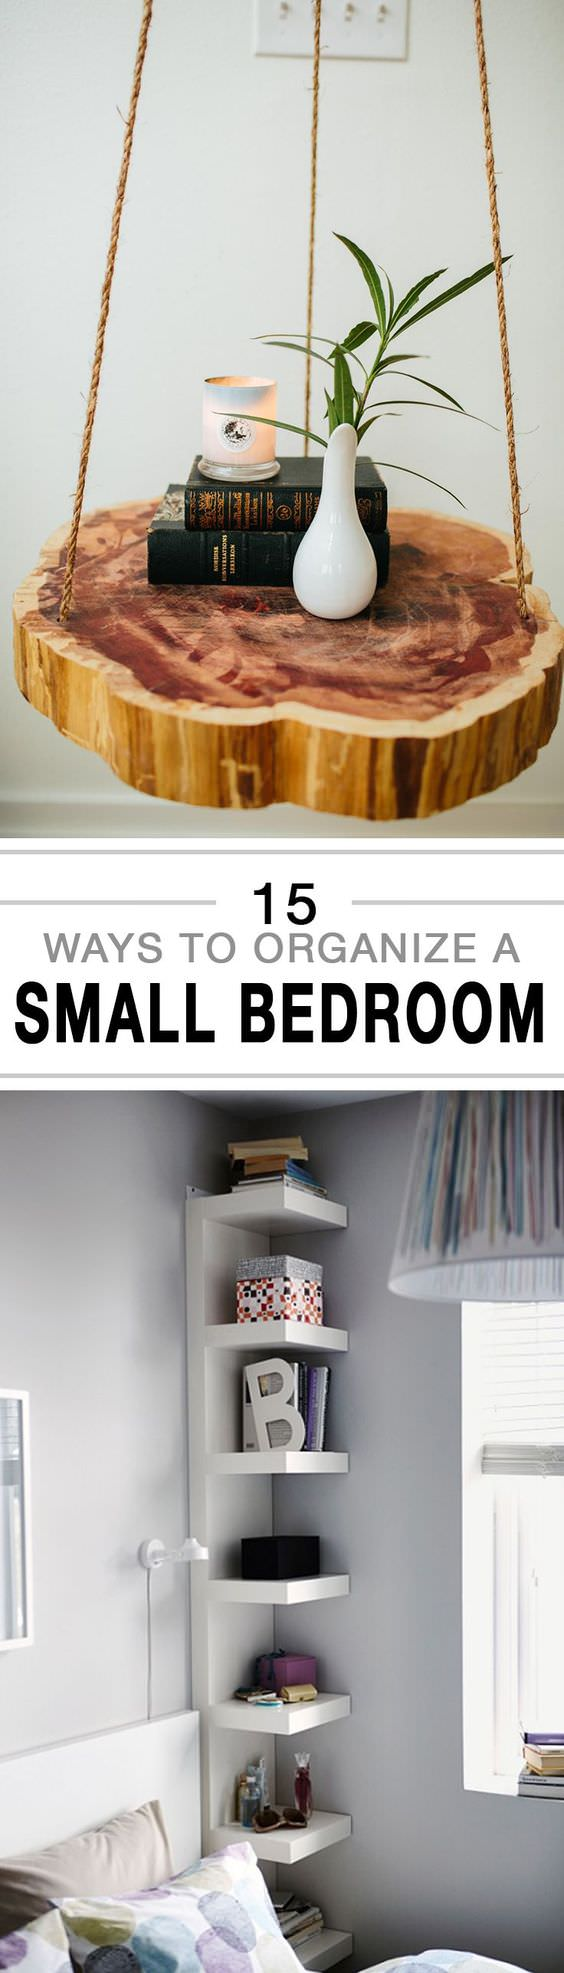 small bedroom organization tips 15 ways to organize a small bedroom house 17187